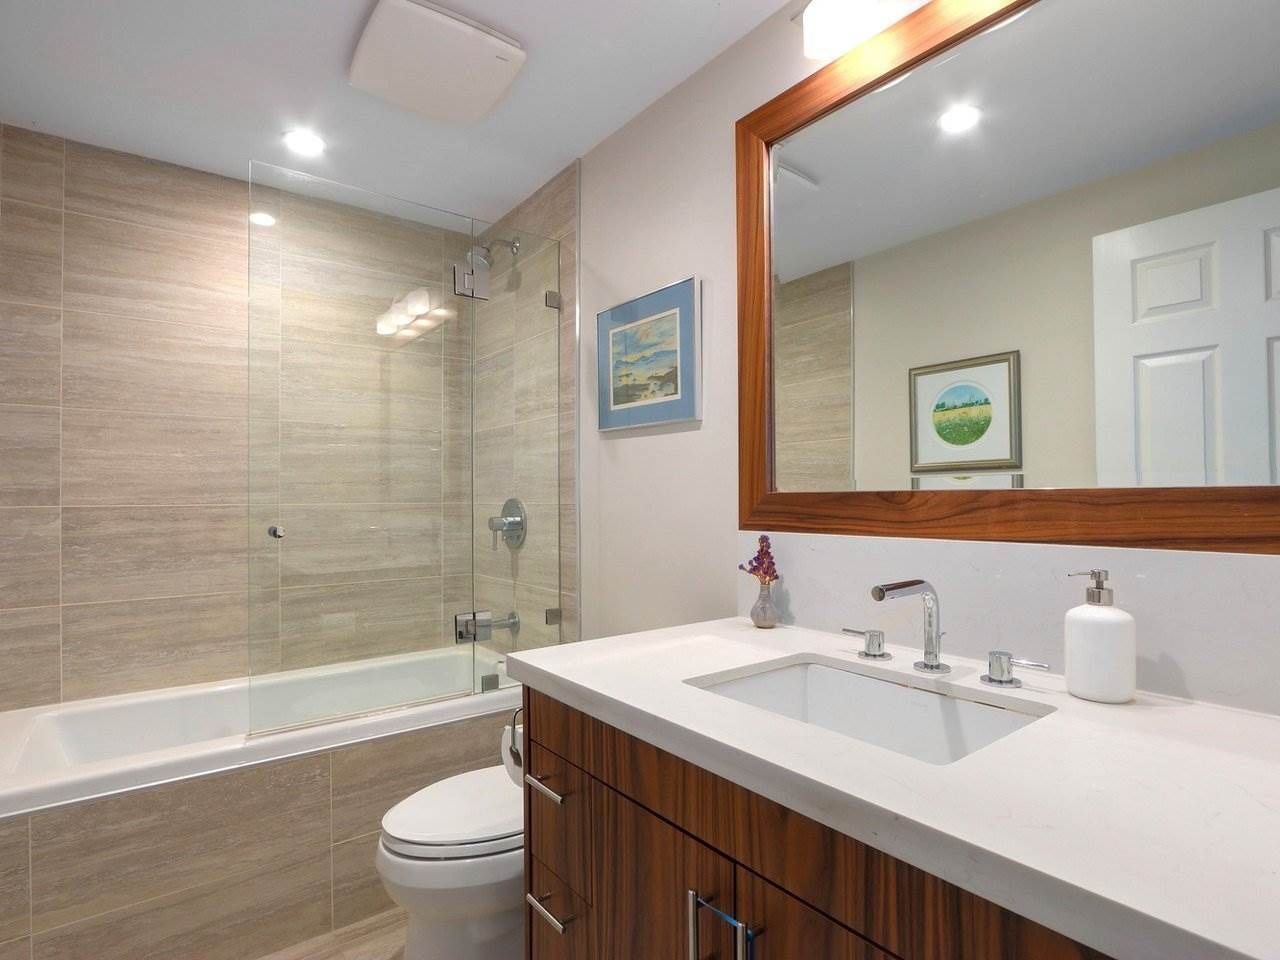 """Photo 17: Photos: 5916 NANCY GREENE Way in North Vancouver: Grouse Woods Townhouse for sale in """"Grousemont Estates"""" : MLS®# R2432954"""